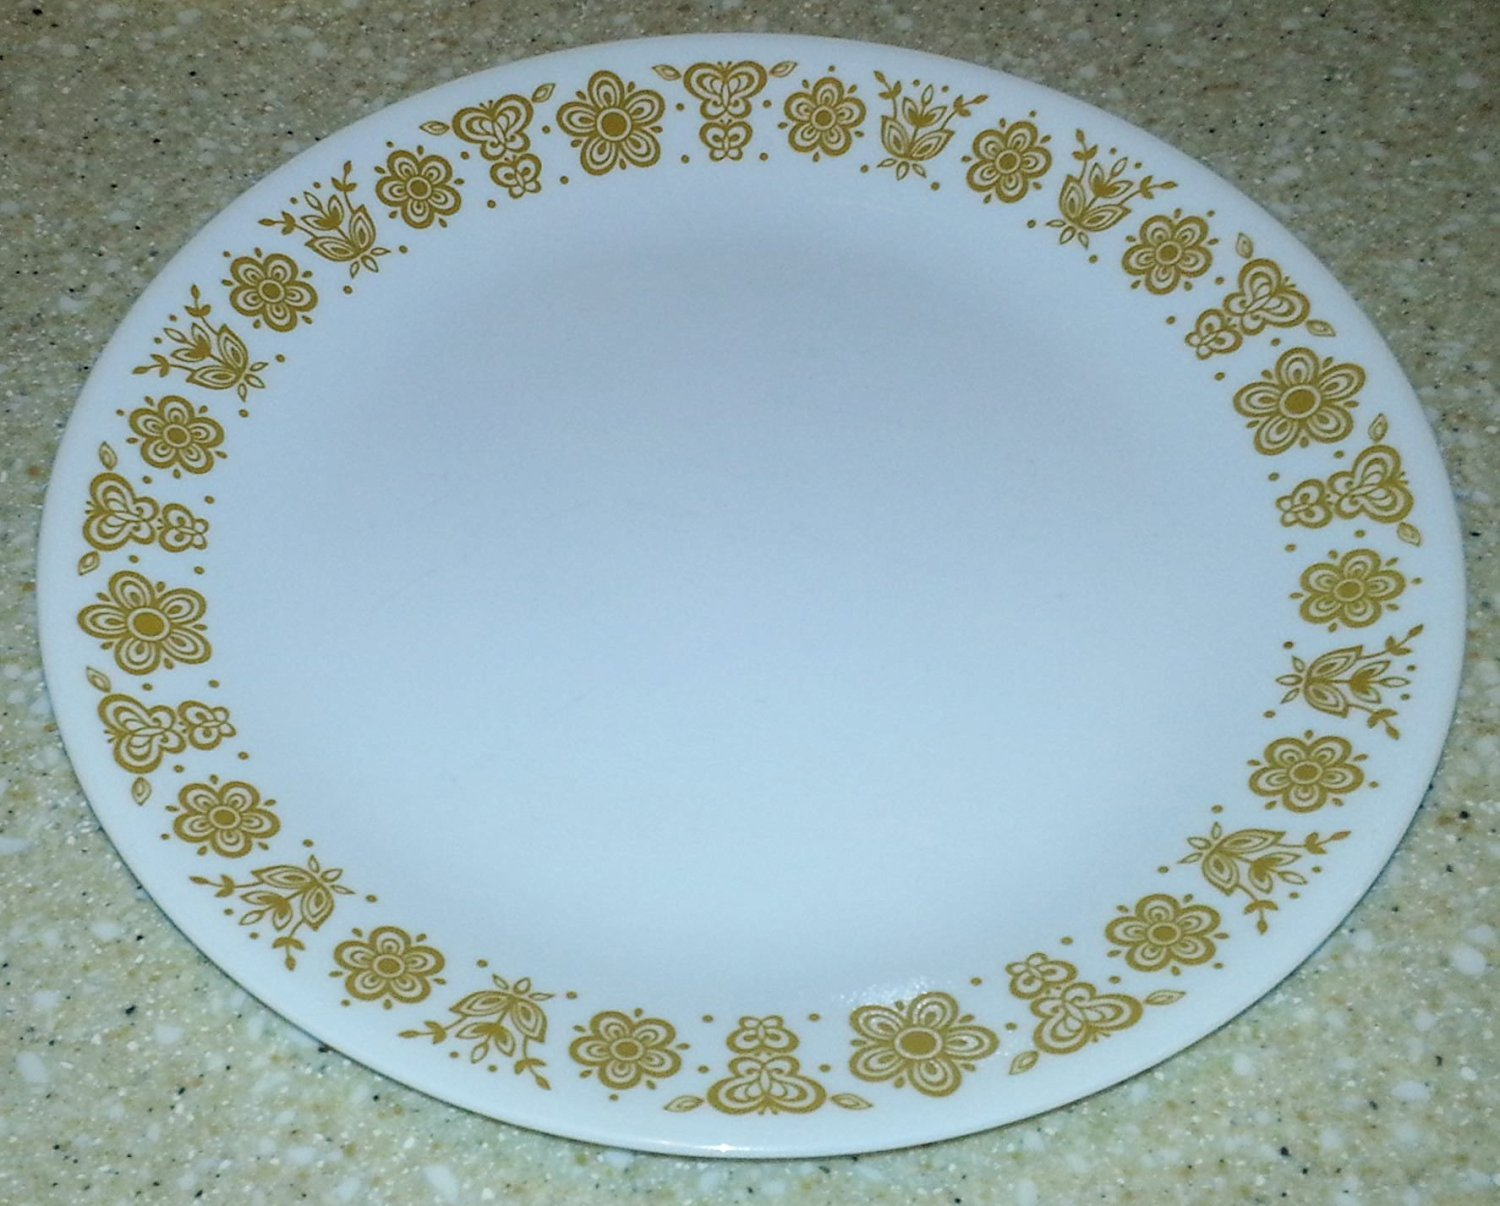 Amazon.com   Corelle - Butterfly Gold - 10-1/4\  Dinner Plates (Set of 4) Correlle Sets Accent Plates & Amazon.com   Corelle - Butterfly Gold - 10-1/4\